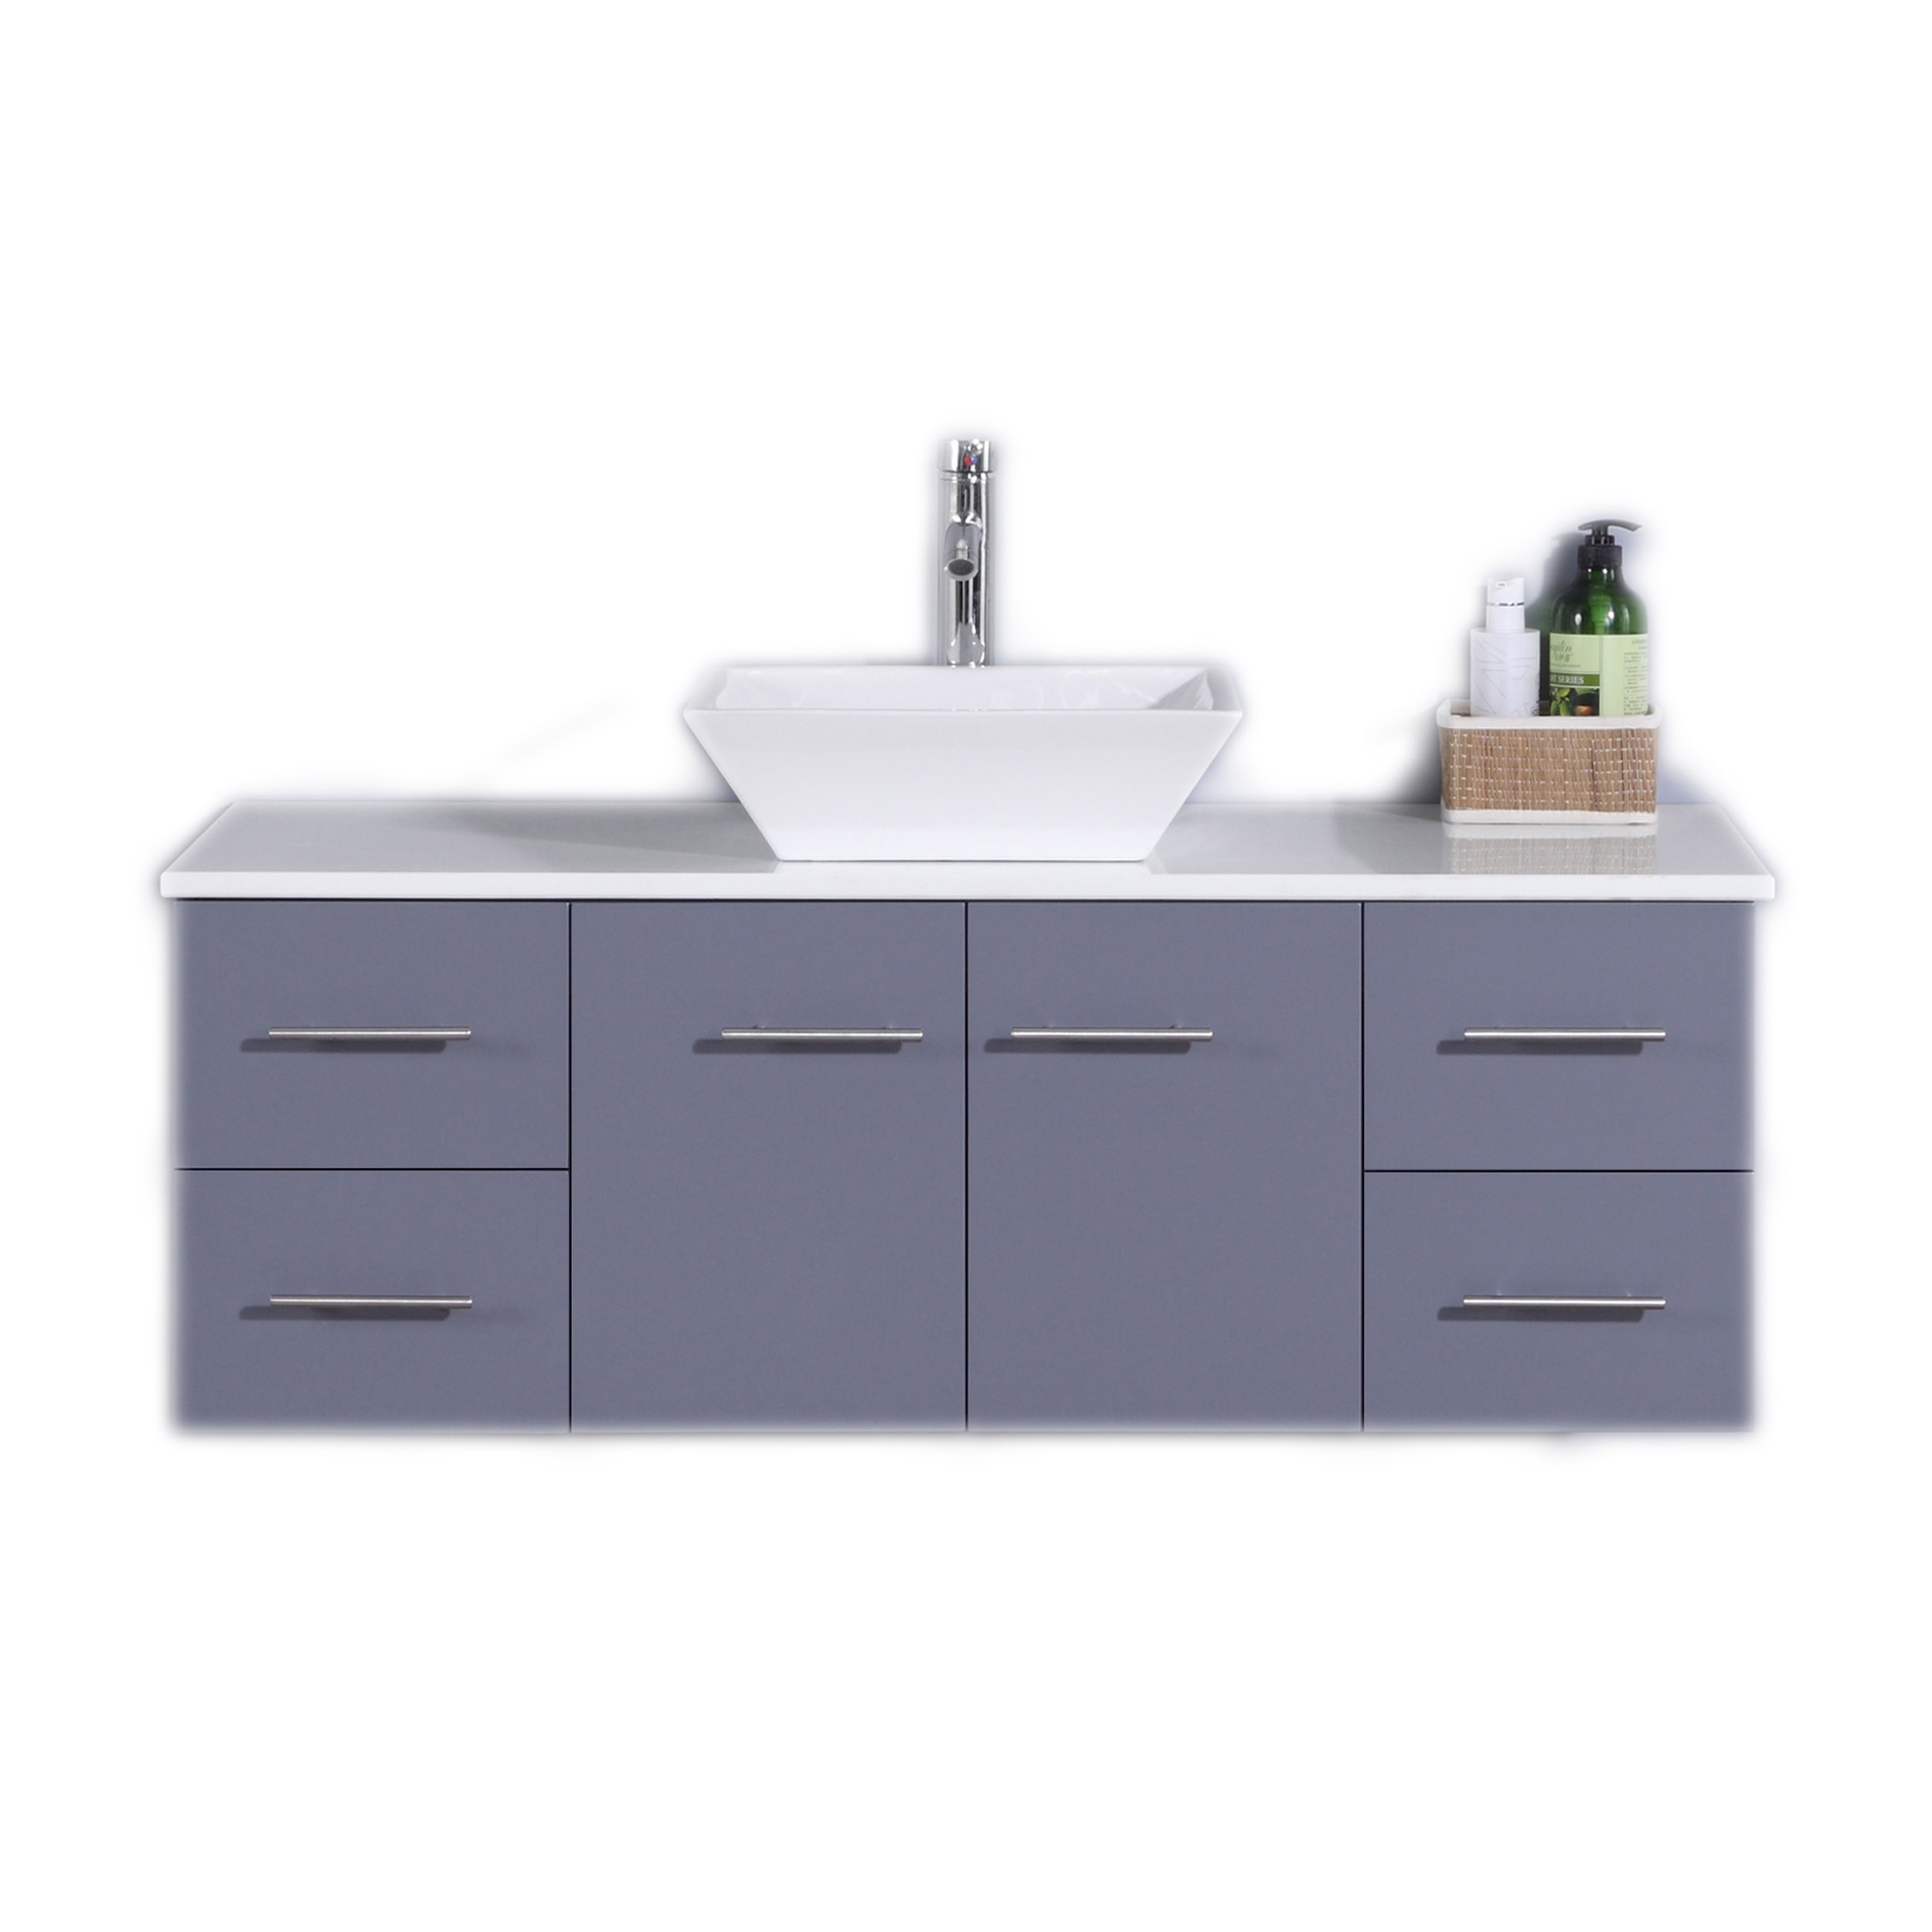 for double full inset dual with eagan sale size best sink charming unique of home bathroom elegant vanity idea white tops top sinkoom faucet excelent